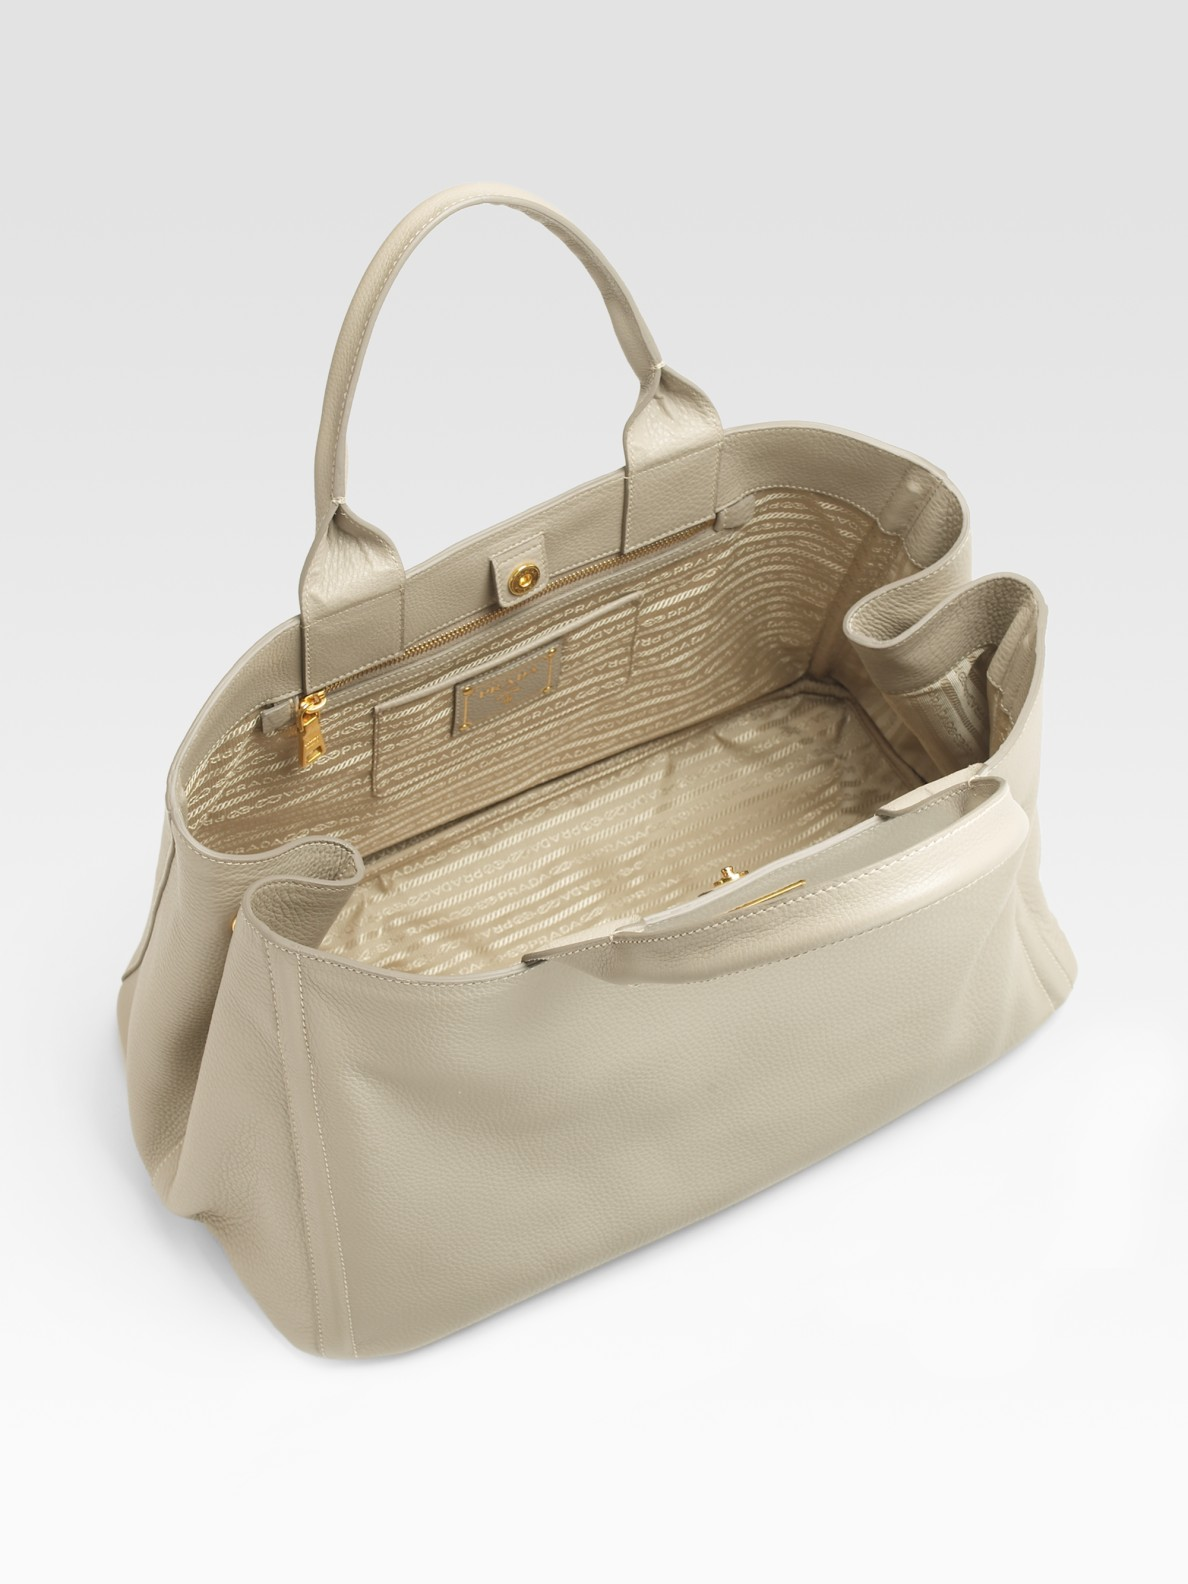 prada suede bags - Prada Vitello Daino East/west Tote Bag in Gray (grey) | Lyst